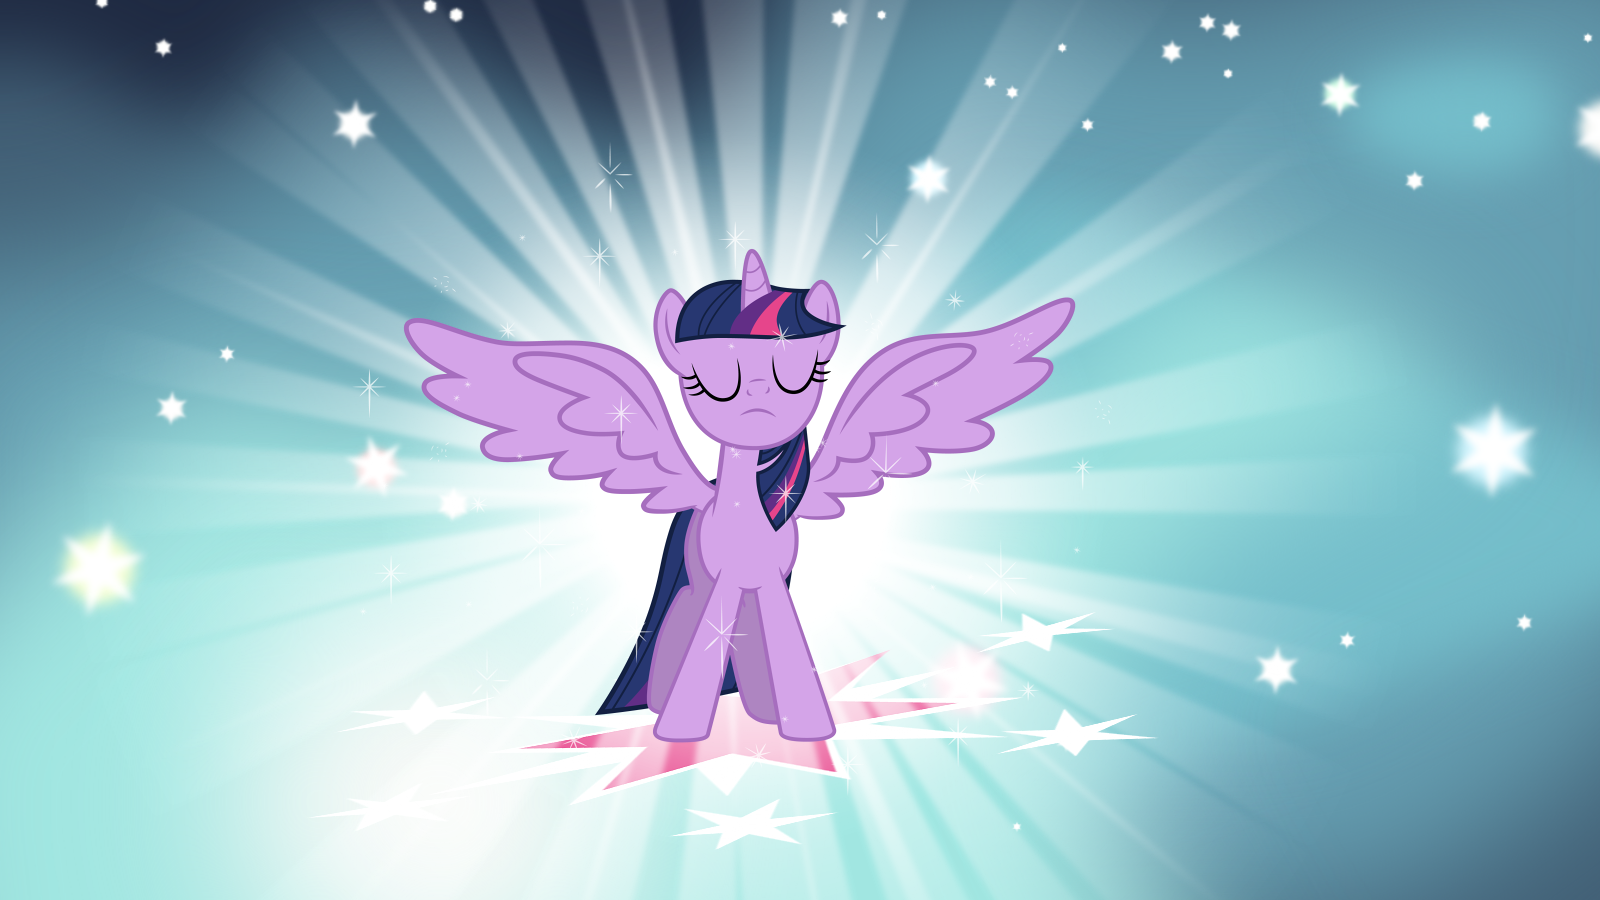 Alicorn Twilight Wallpaper v2 by Luuandherdraws